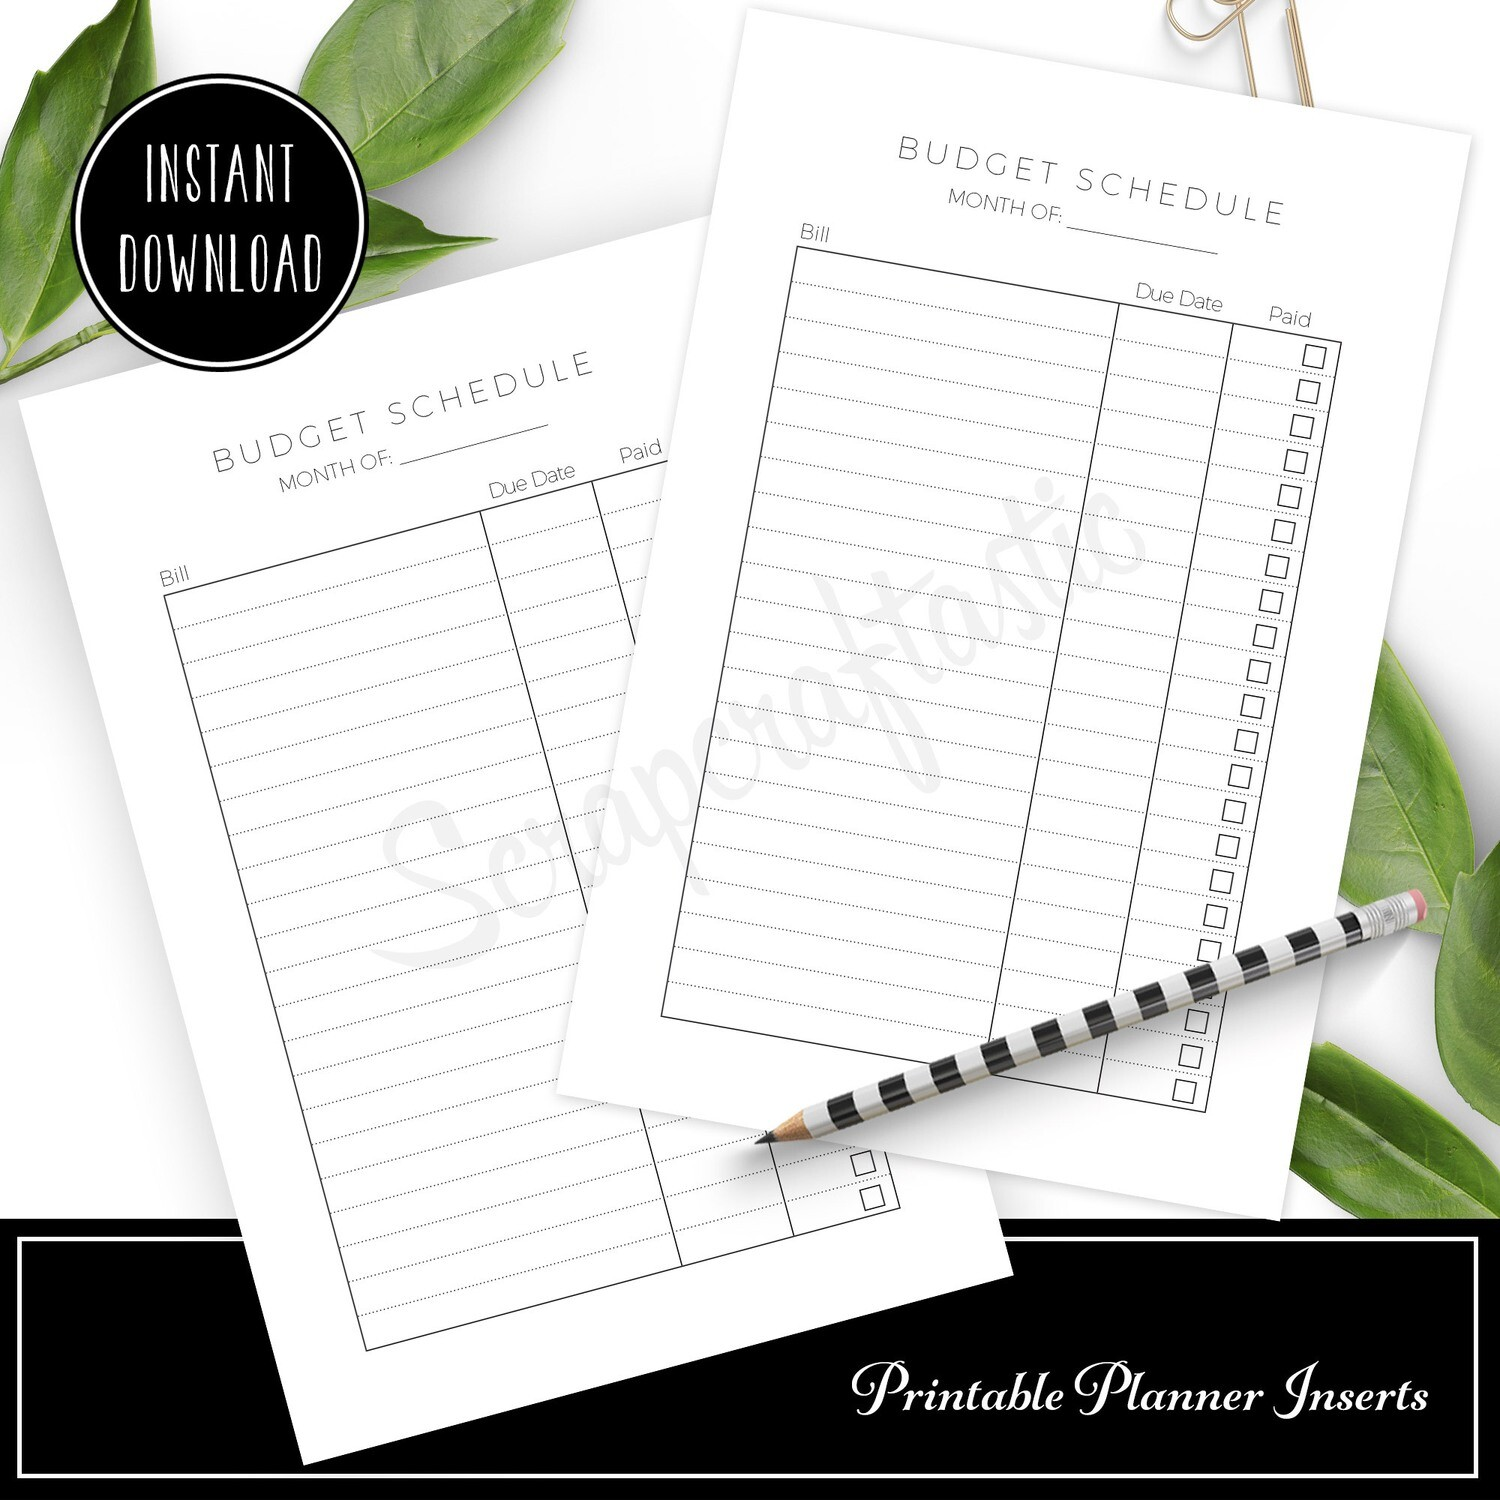 HALF LETTER - Monthly Budget Schedule Printable Planner Inserts